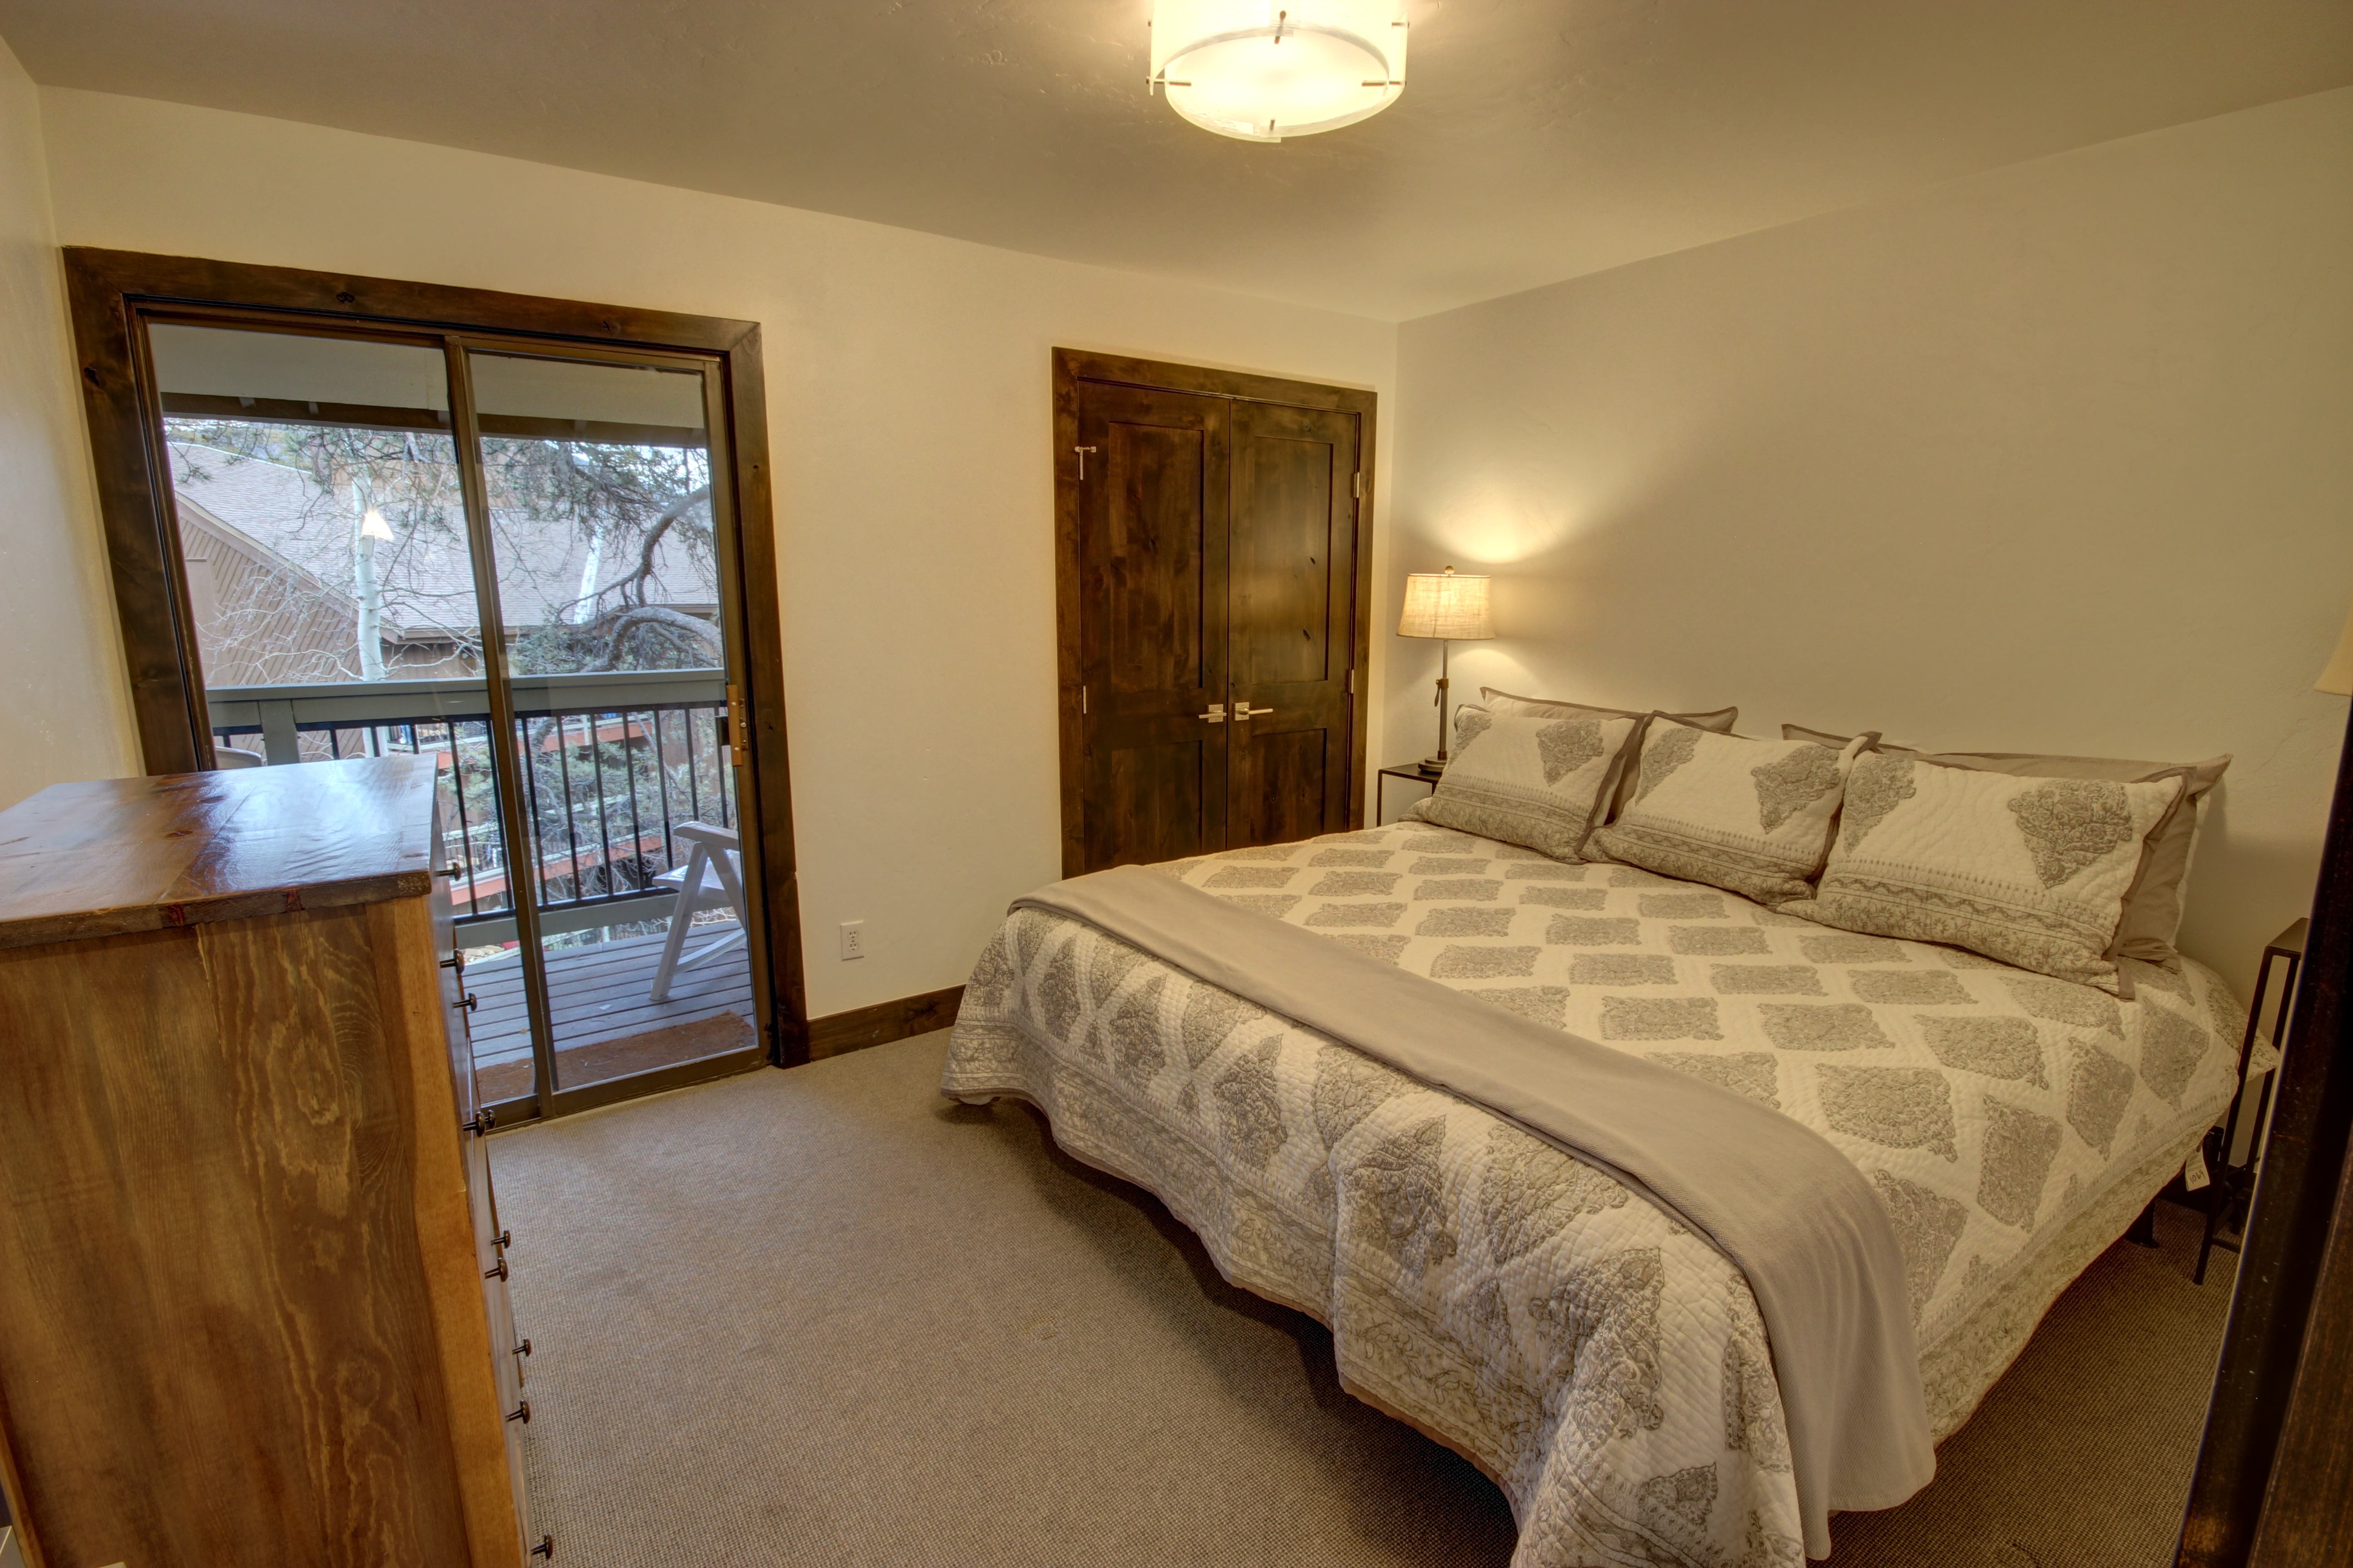 Bedroom with comfortable beds and amazing view